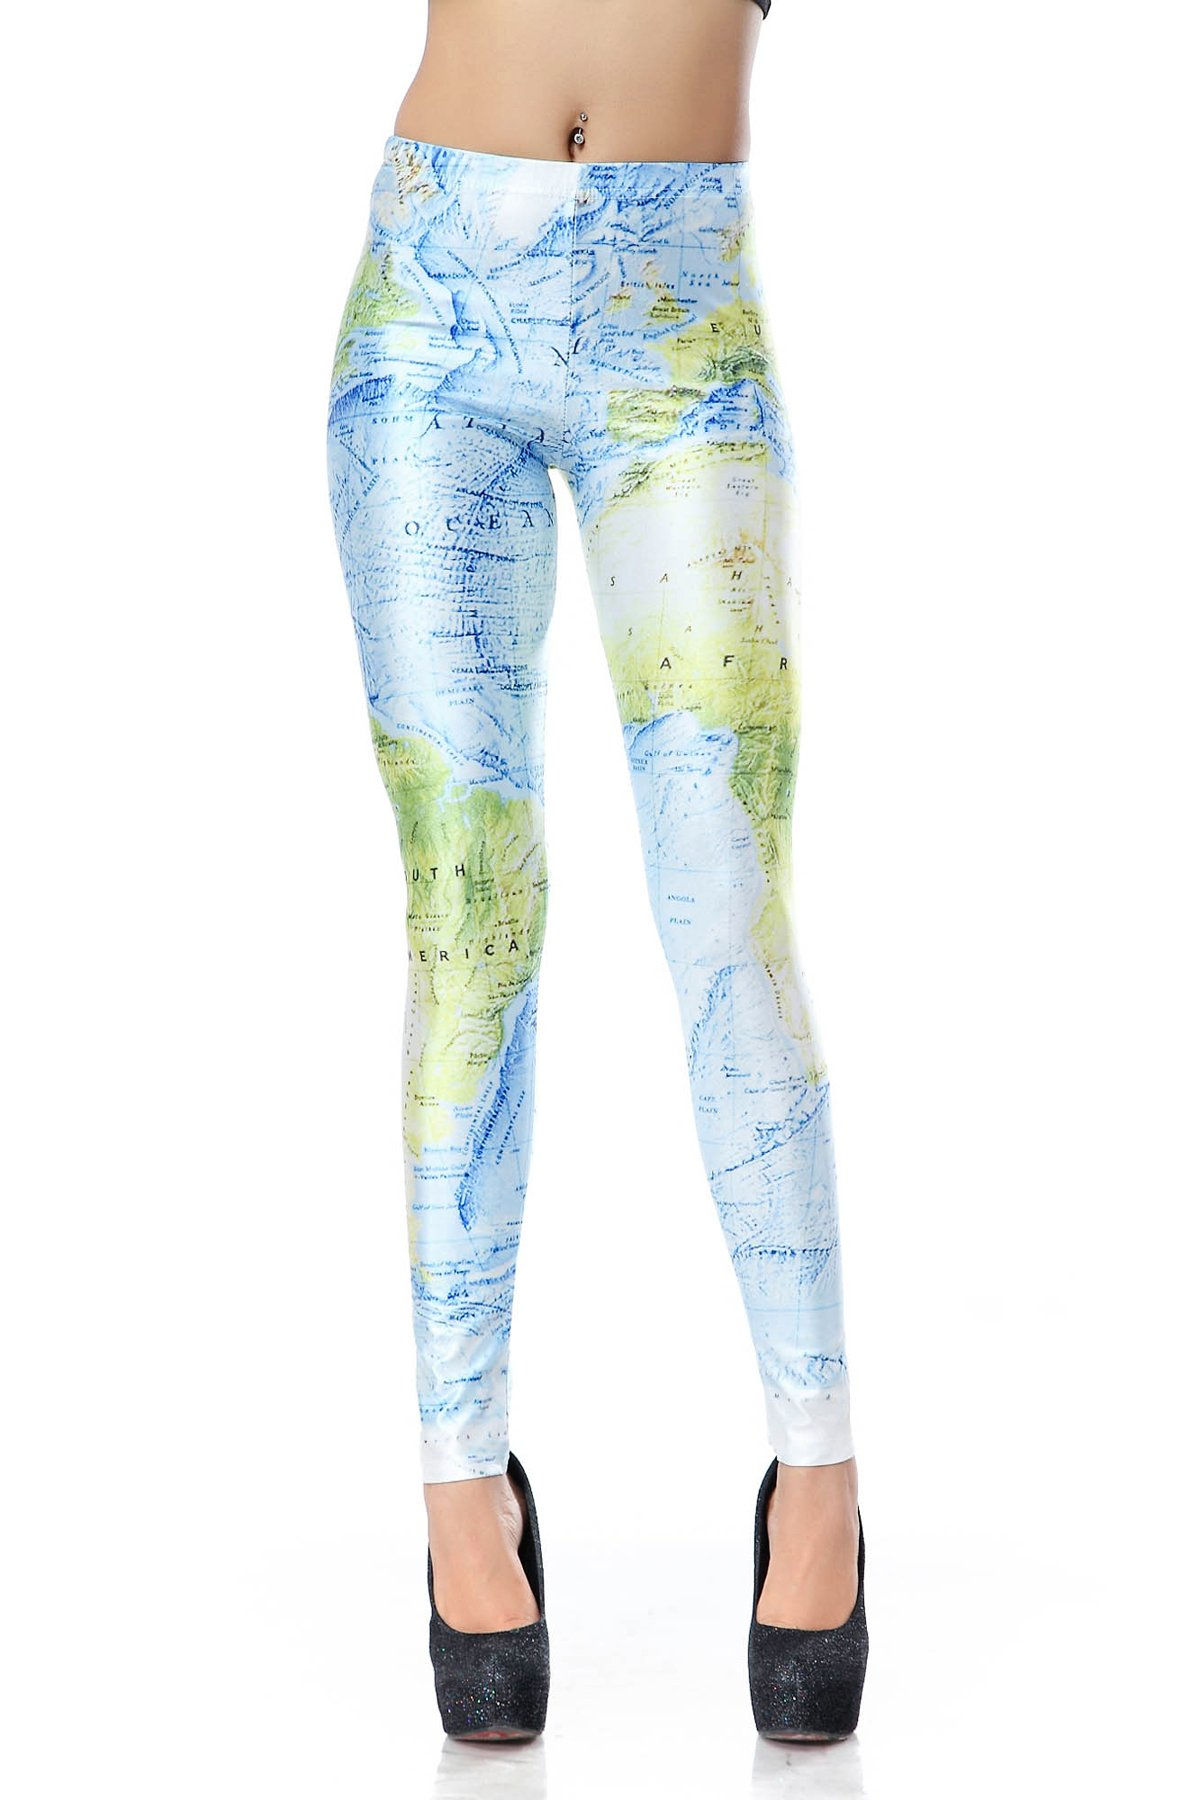 Lord of the ring Vintage map Leggings